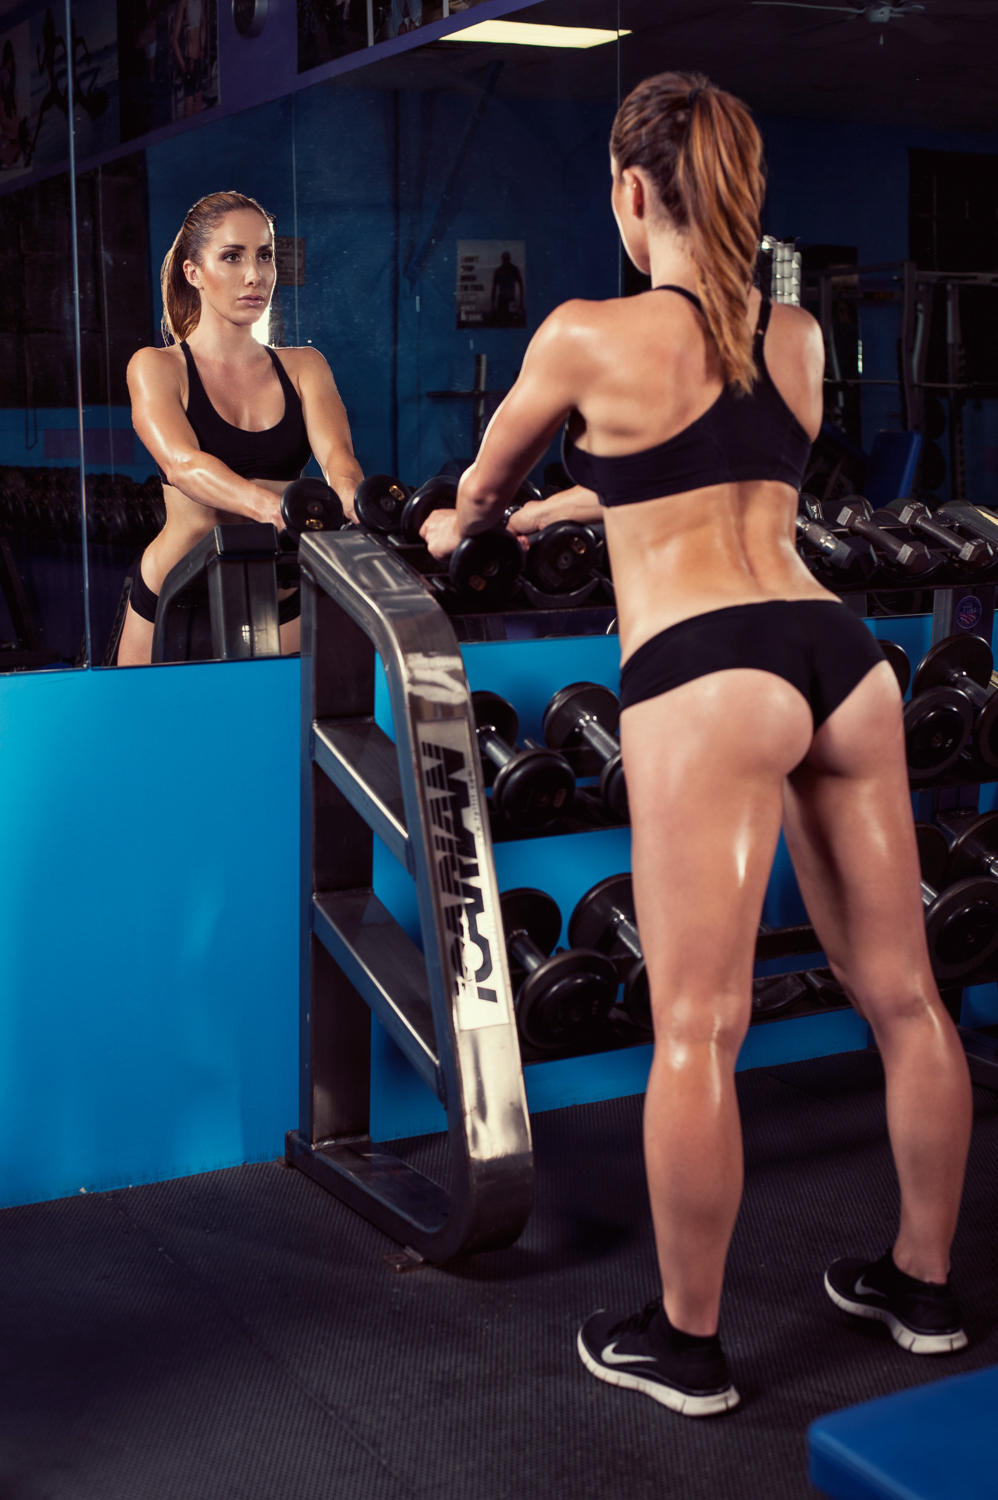 Toronto and Hamilton Fitness Bikini Photographer -Marek Michalek 006.jpg